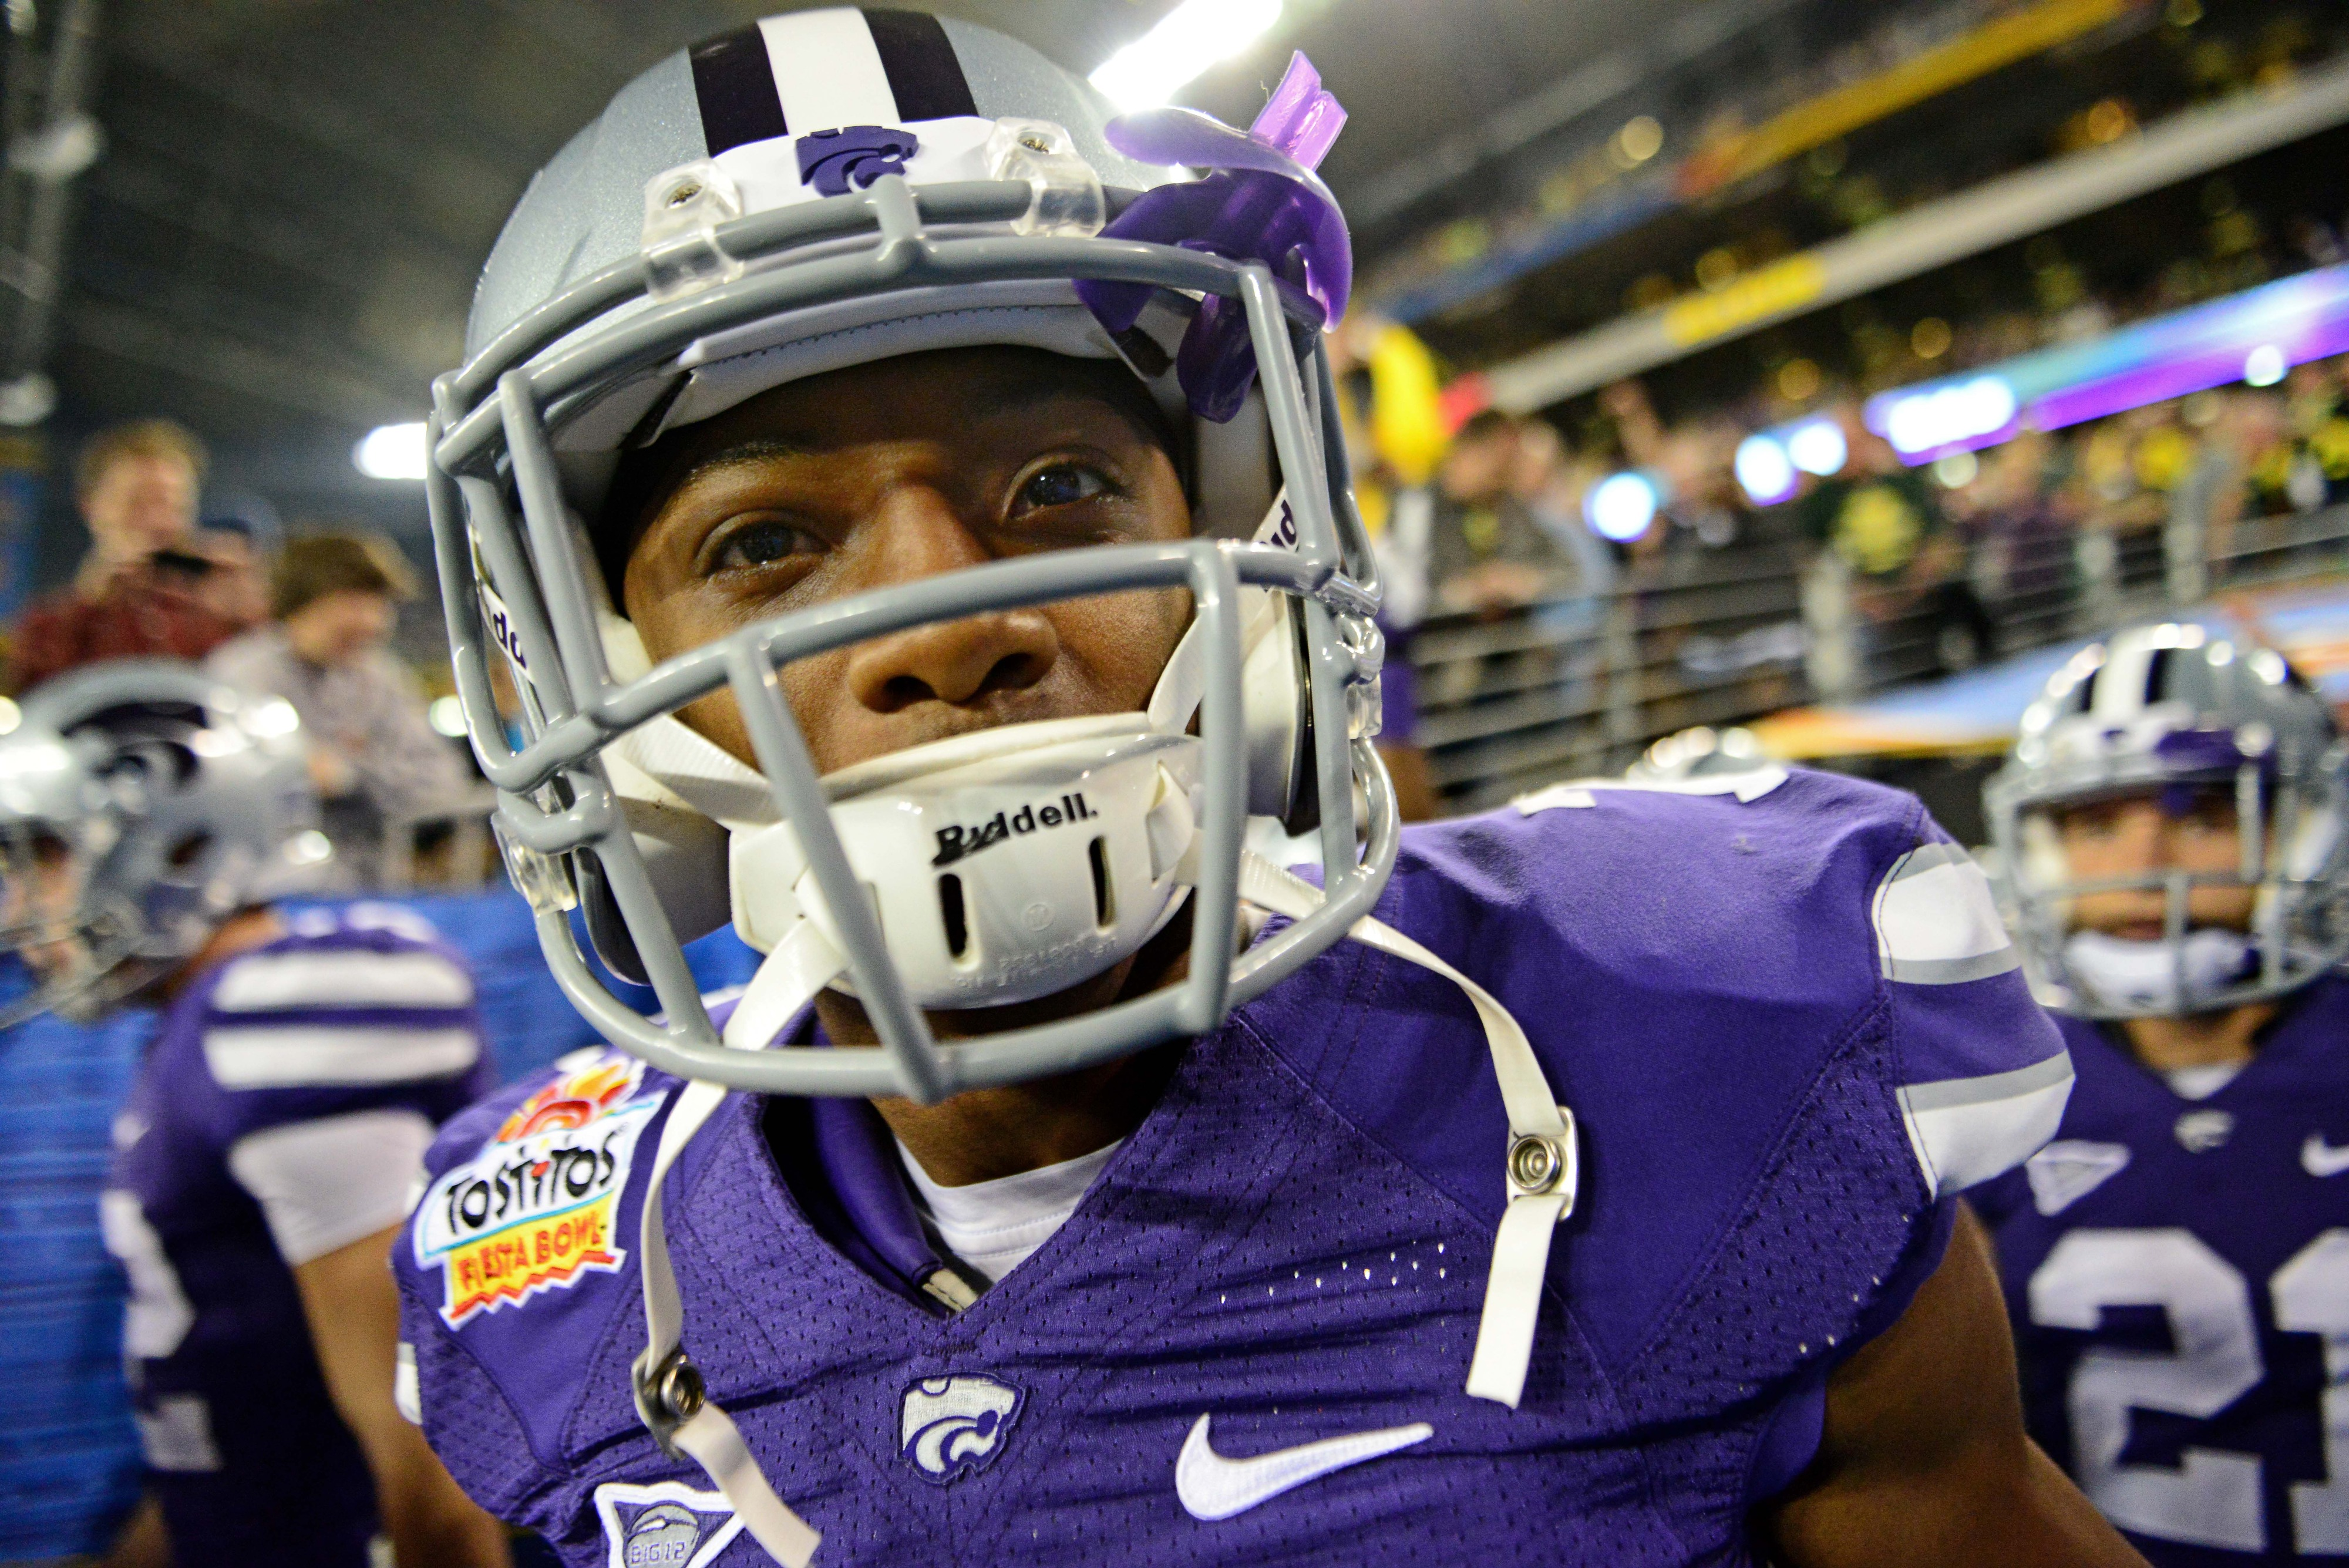 Kip Daily has just one season to make or break his K-State legacy.